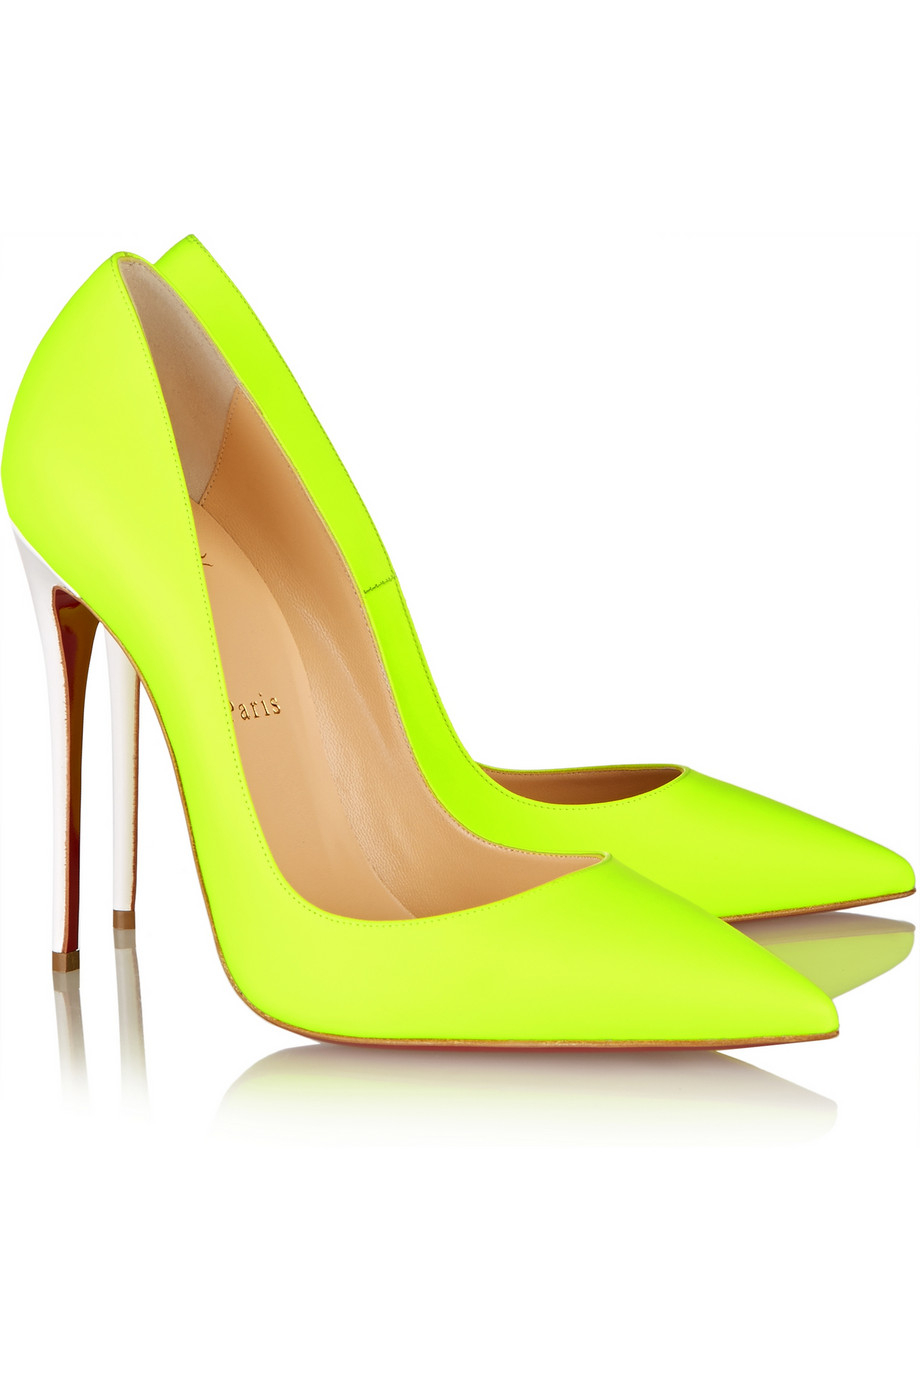 fcb81f187b0 Lyst - Christian Louboutin So Kate 120 Neon Leather Pumps in Yellow